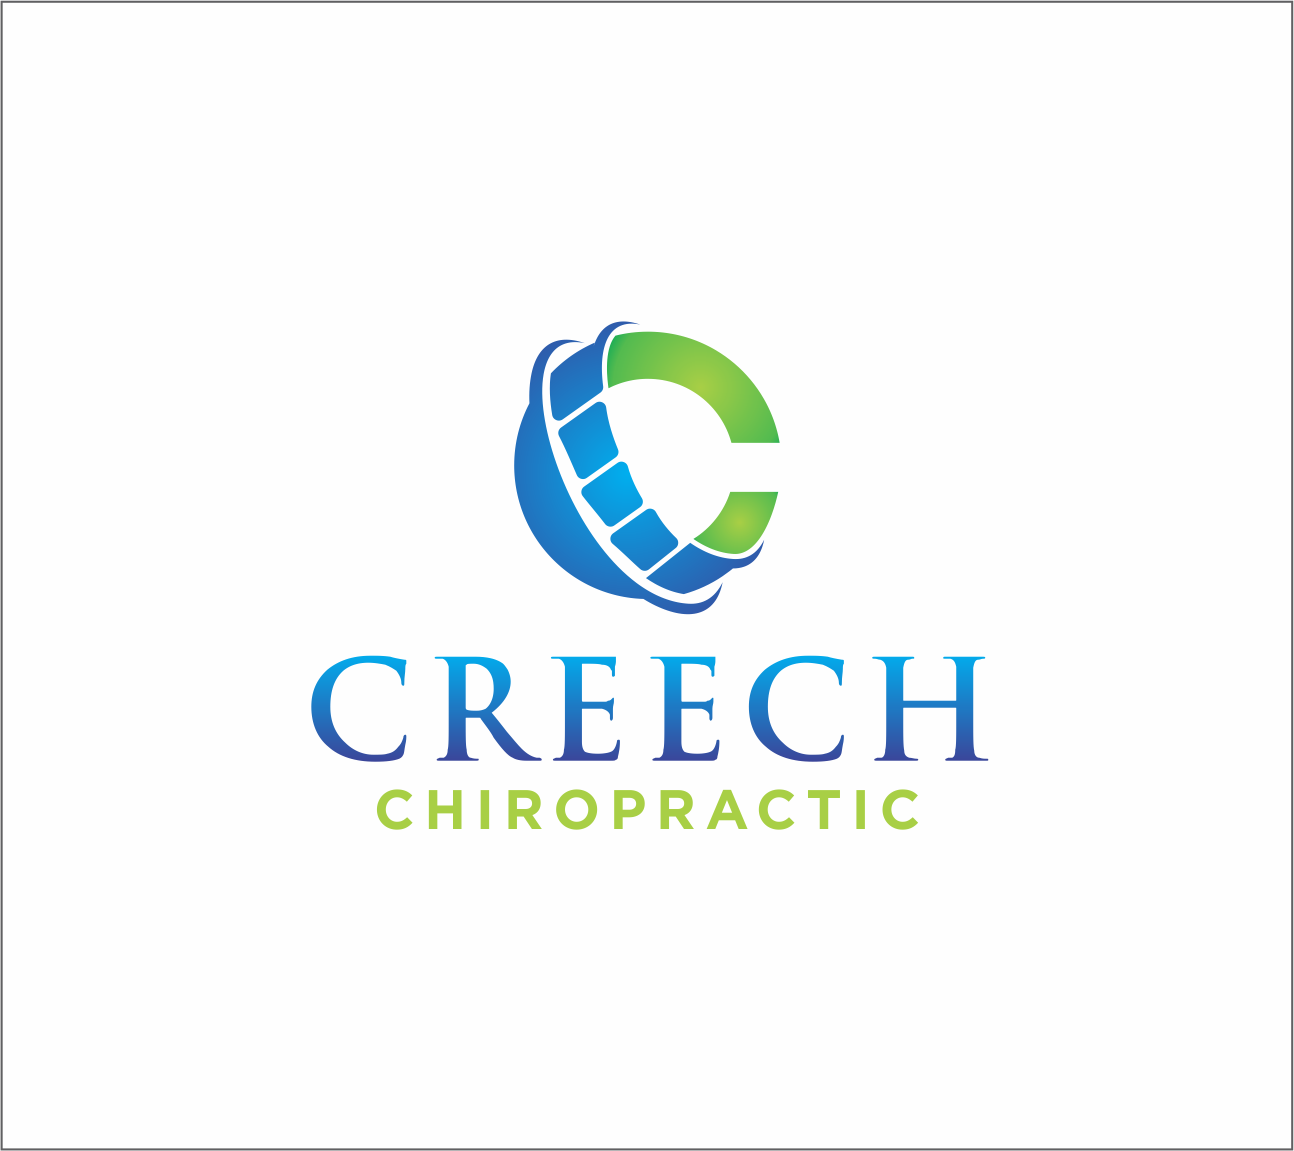 Logo Design by Armada Jamaluddin - Entry No. 92 in the Logo Design Contest Imaginative Logo Design for Creech Chiropractic.